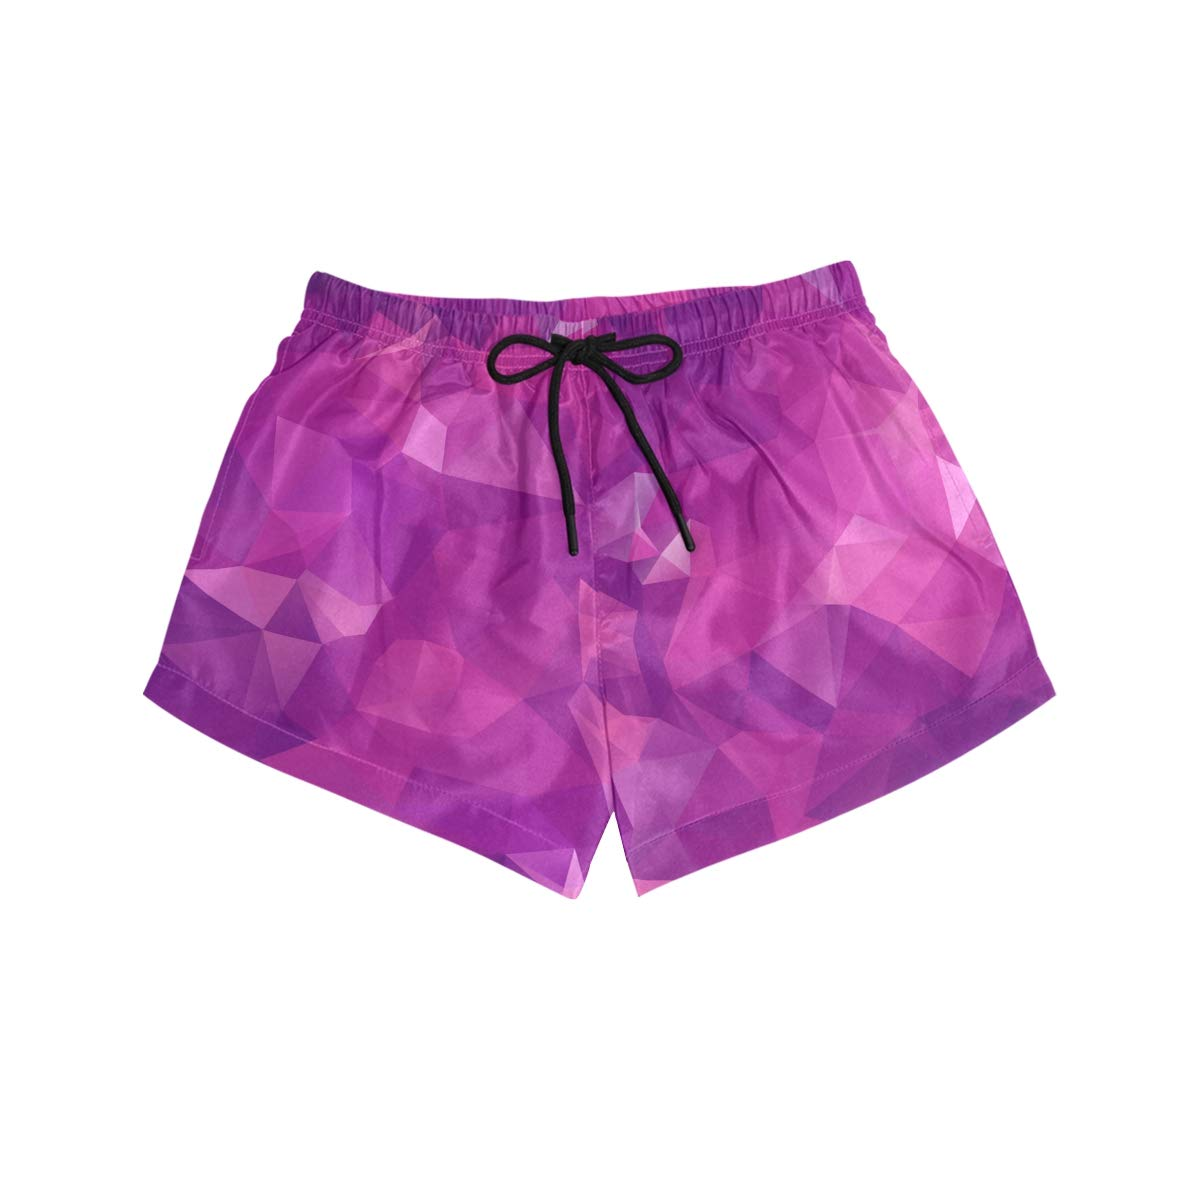 Abstract Purple Pattern Womens Sport Beach Swim Shorts Board Shorts Swimsuit with Mesh Lining